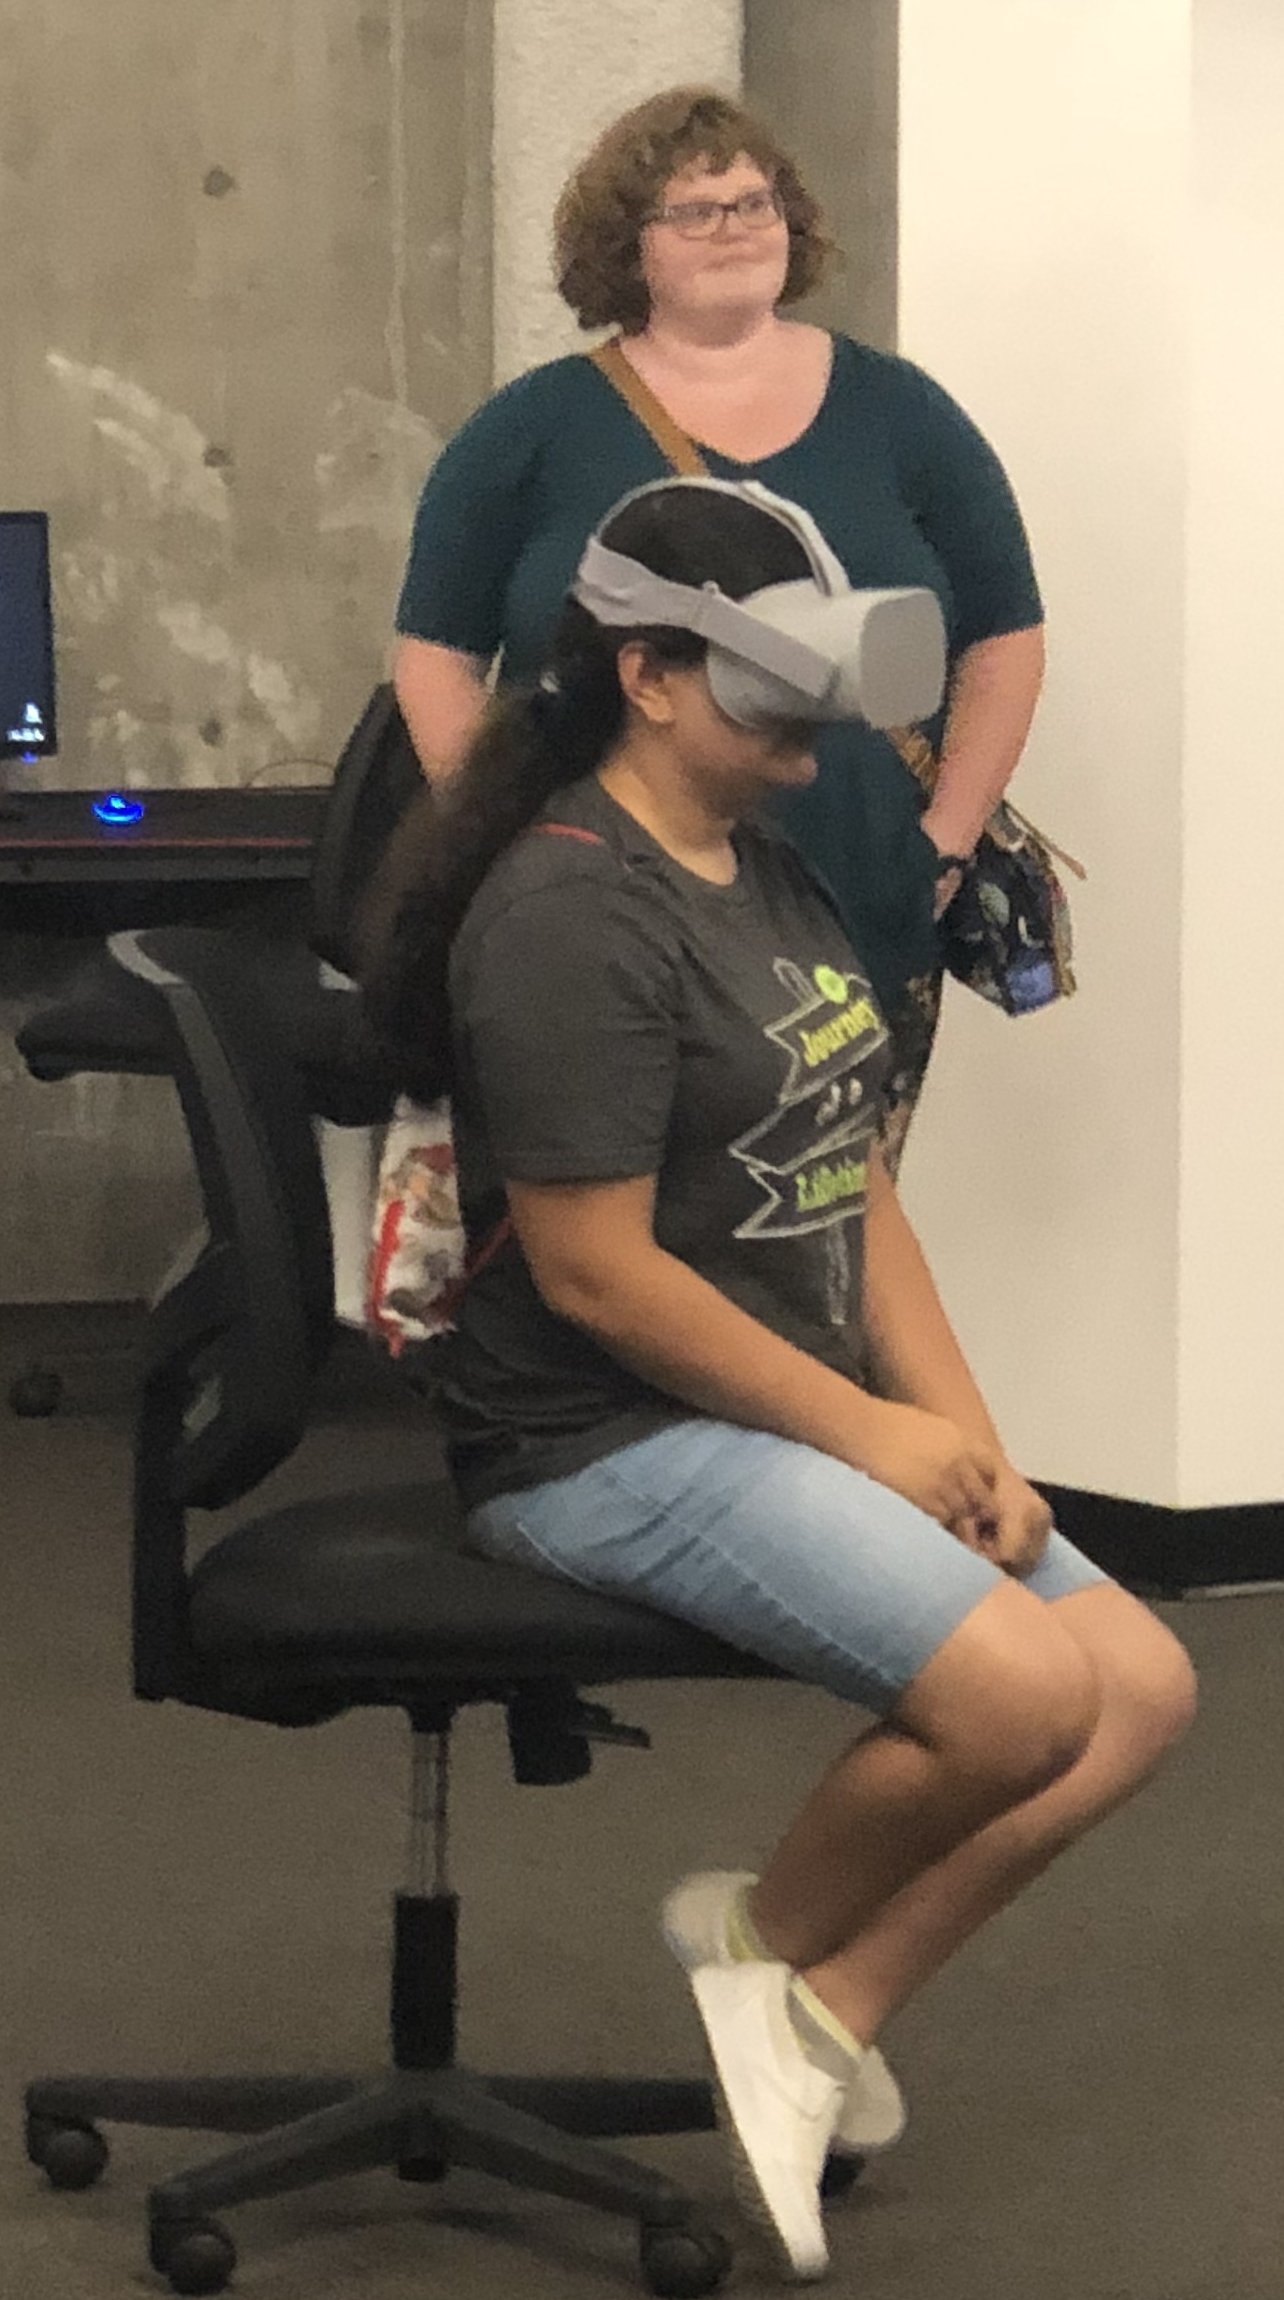 VR Demonstration at Shenandoah University